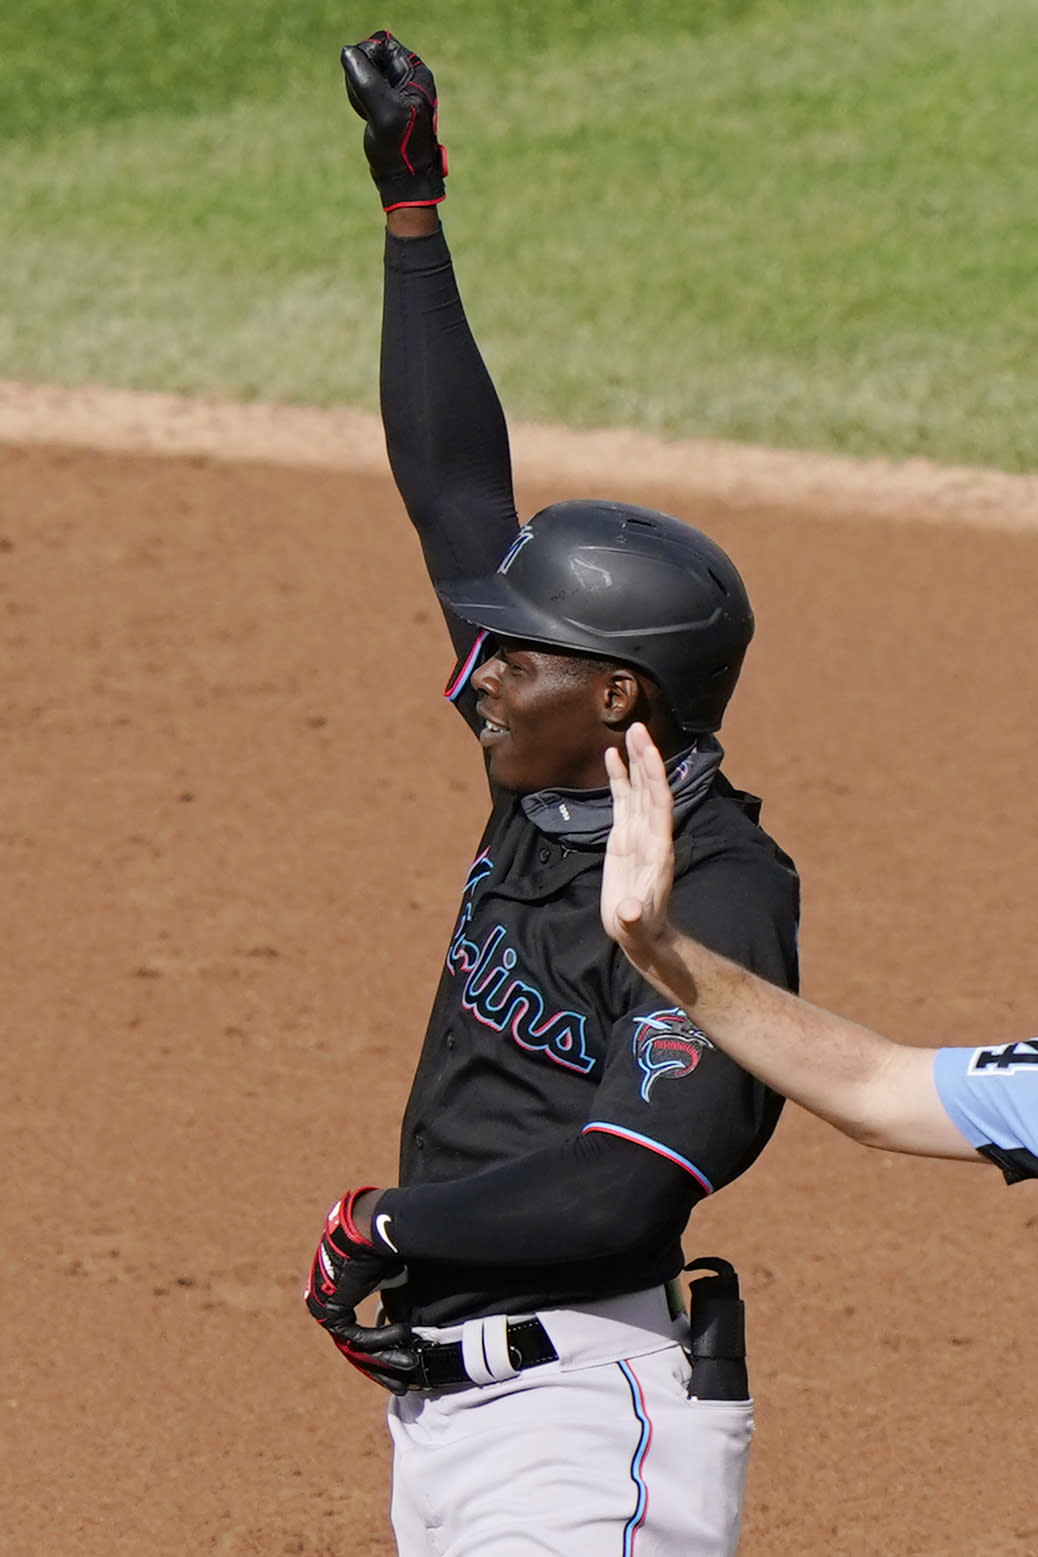 Miami Marlins Jazz Chisholm gestures to the Marlins dugout after hitting a two-run double during the second inning of a baseball game against the New York Yankees, Sunday, Sept. 27, 2020, at Yankee Stadium in New York. (AP Photo/Kathy Willens)